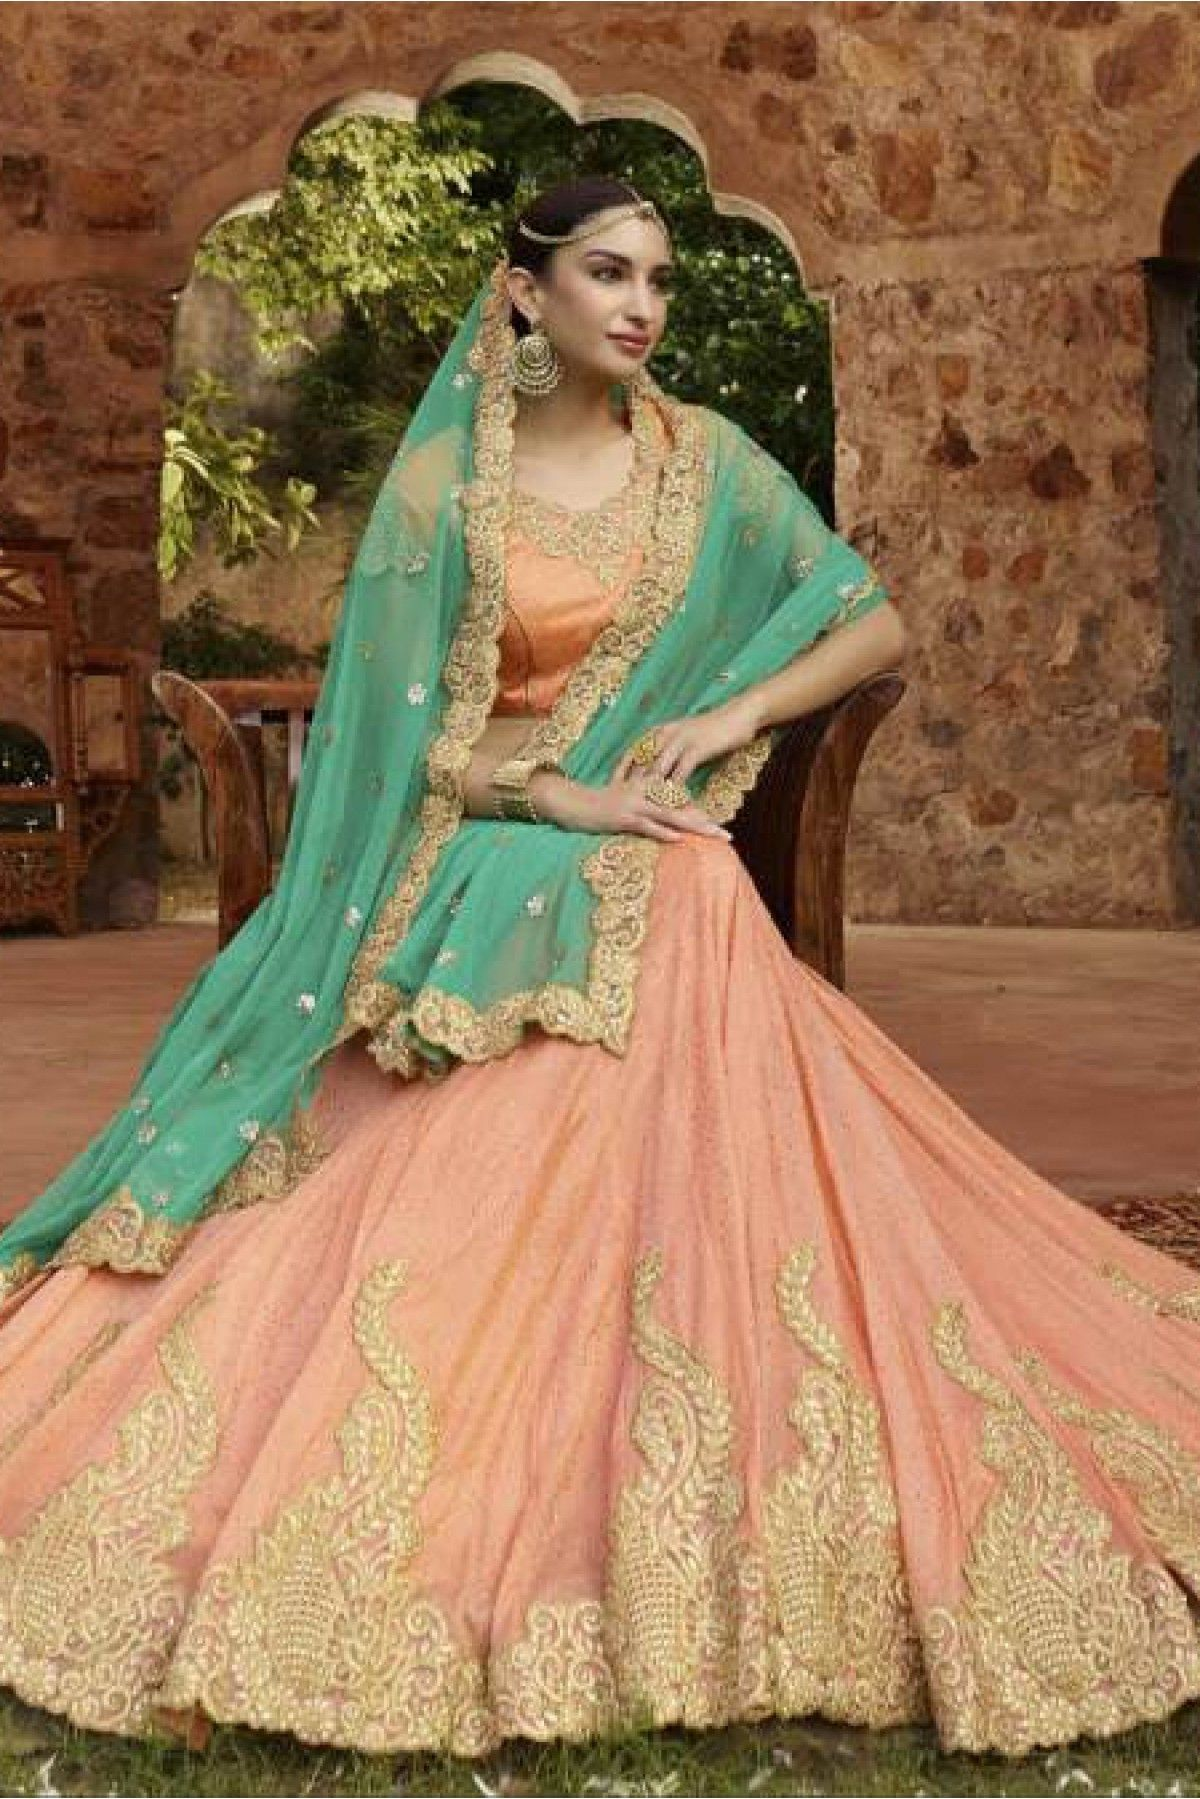 e731b0c18a Sea Green and Peach Colour Net and Silk Fabric Designer A Line Lehenga Choli  Comes With Matching Blouse and Dupatta. This Lehenga Choli Is Crafted With  ...